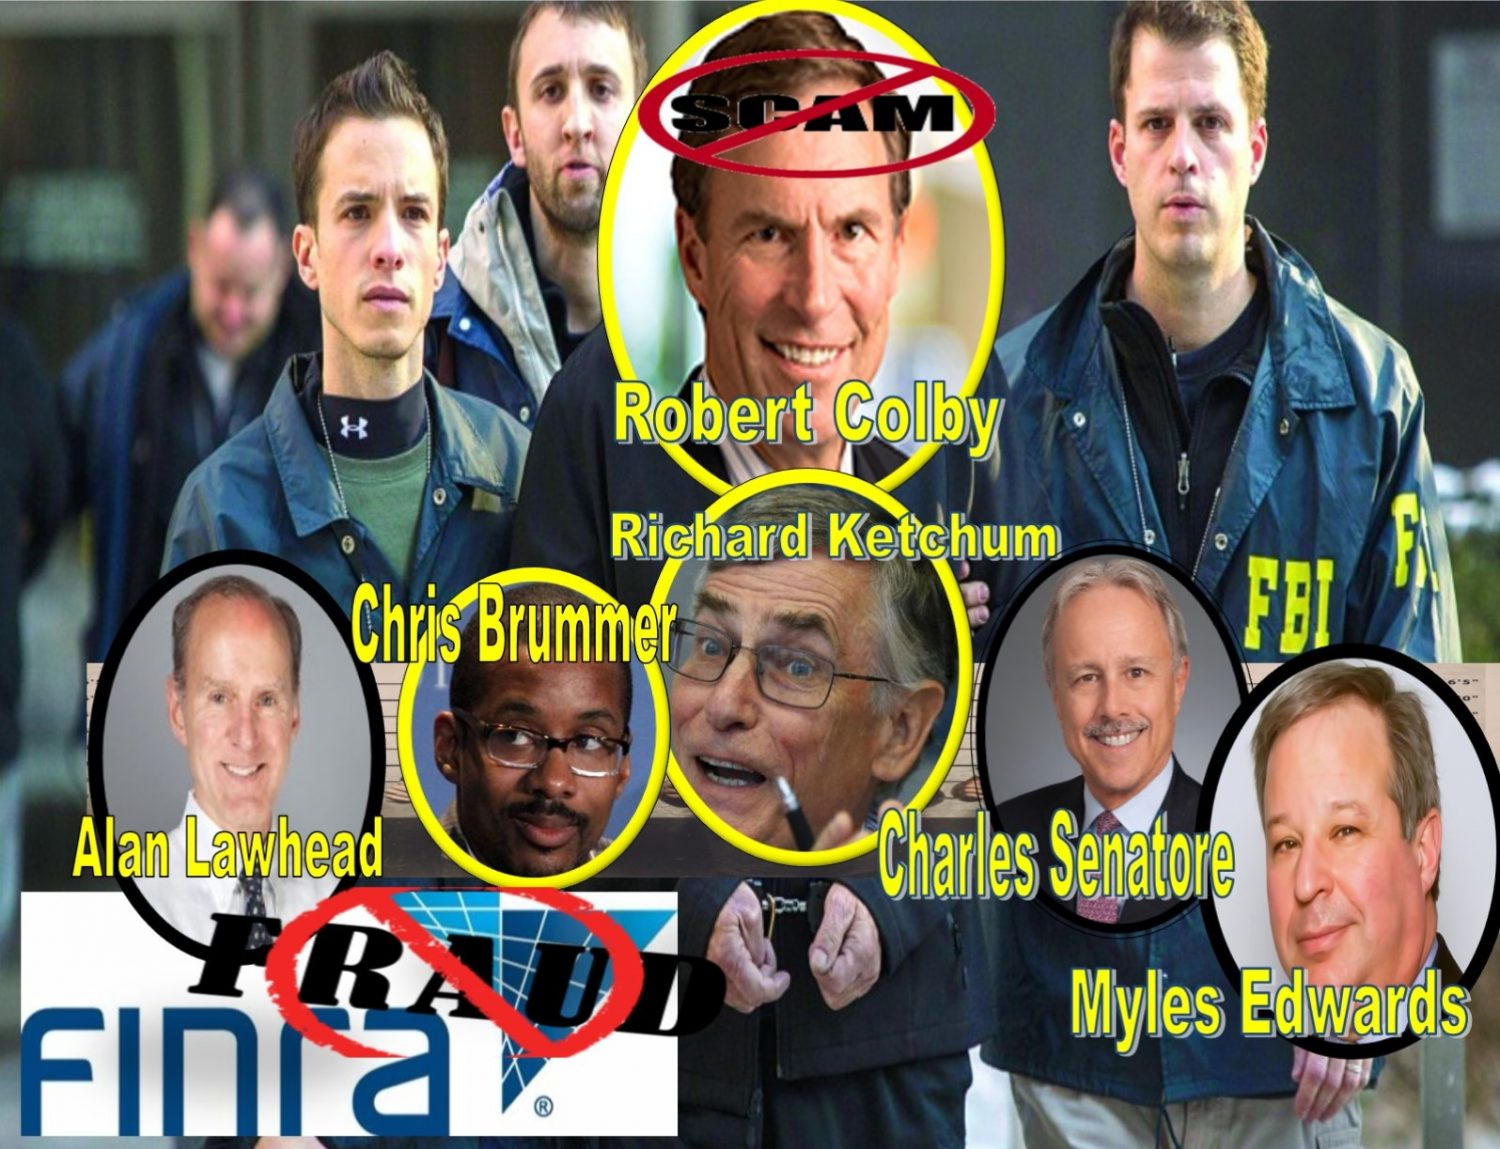 Horrifying Court Confession, Georgetown Law Chris Brummer Implicates FINRA Top Brass Robert Colby, Richard Ketchum in Lies Told